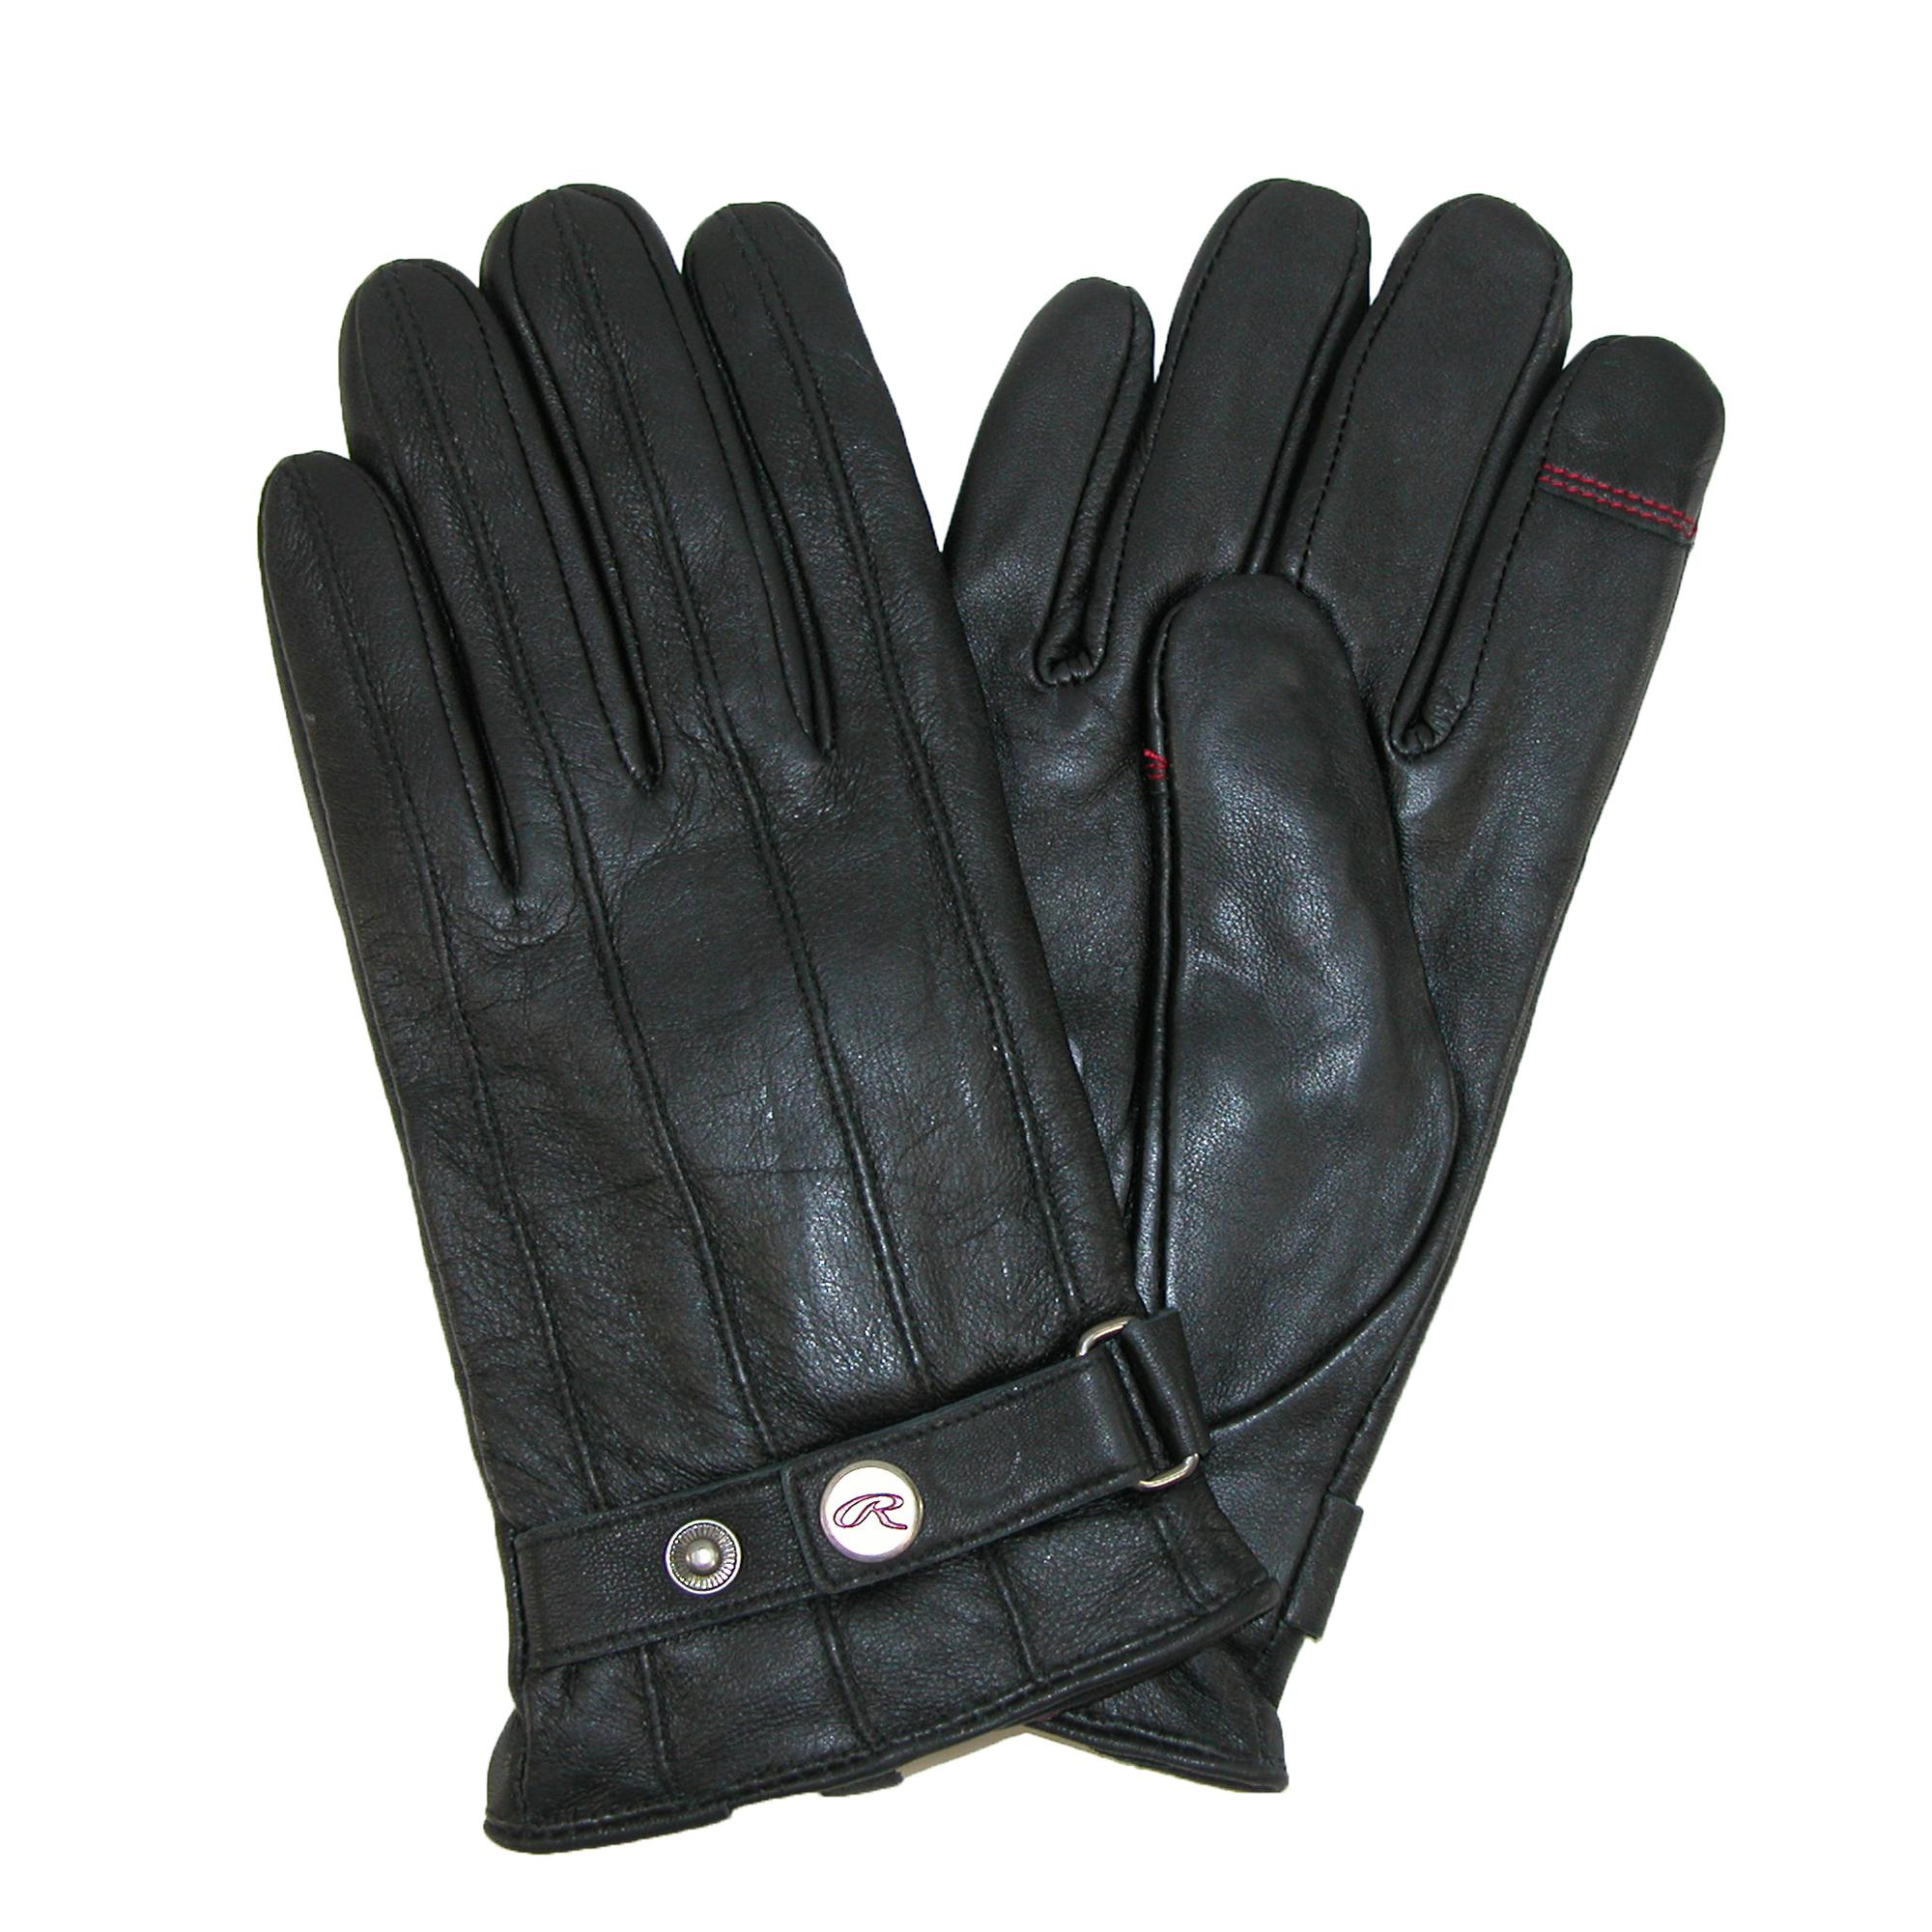 Rawlings Mens Lamb Leather With Adjustable Wrist Strap Touch Screen Glove